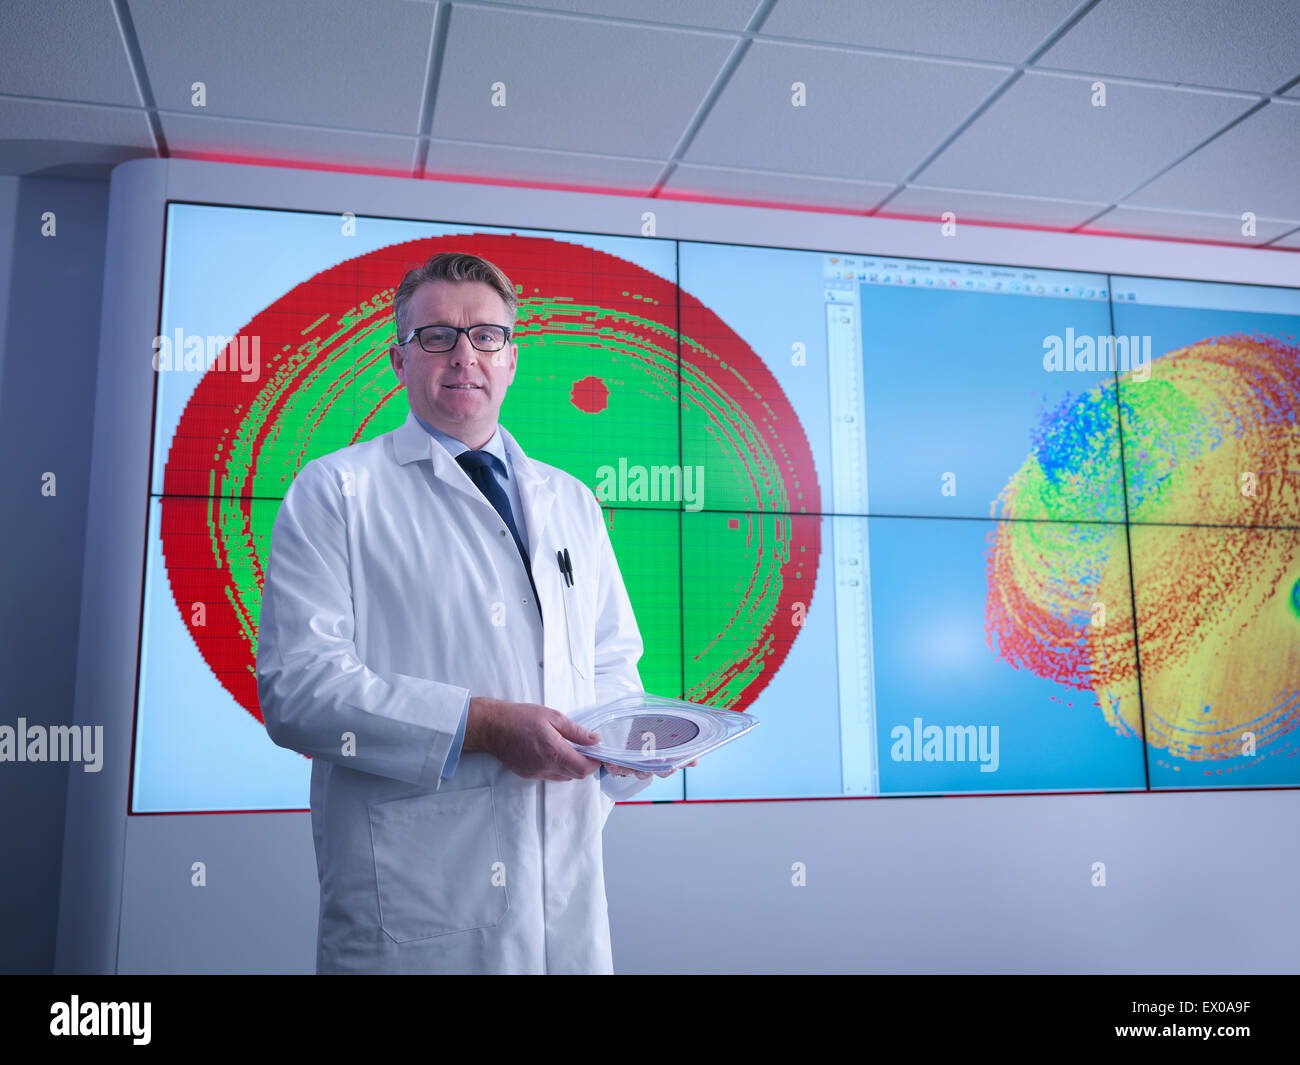 Portrait of scientist in front of graphical display of silicon wafer on screens - Stock Image